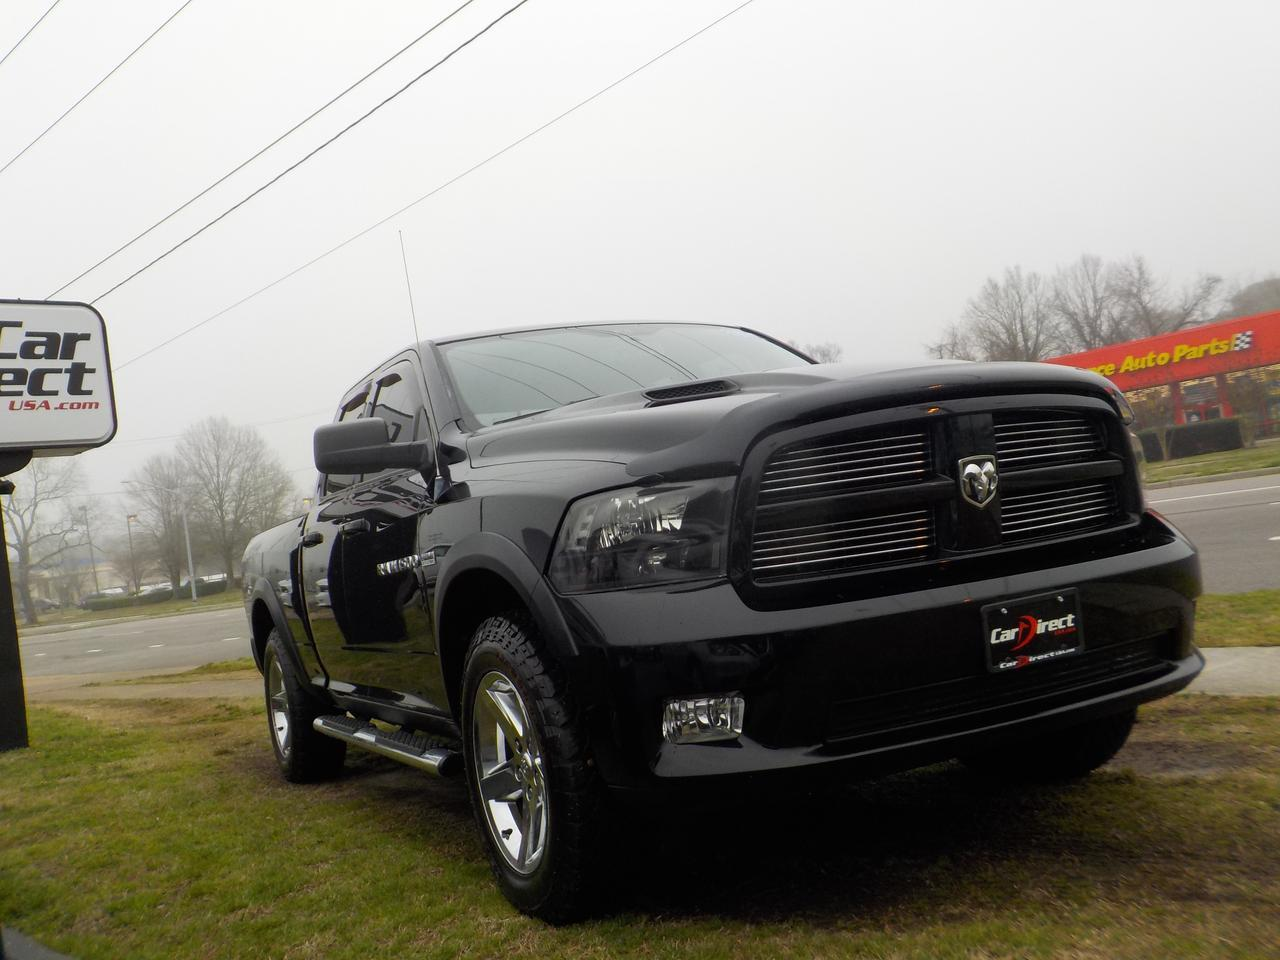 2012 DODGE RAM SPORT QUAD CAB 4X4 HEMI, WARRANTY, REMOTE START,BLUETOOTH, RUNNING BOARDS, TOW, SIRIUS RADIO! Virginia Beach VA